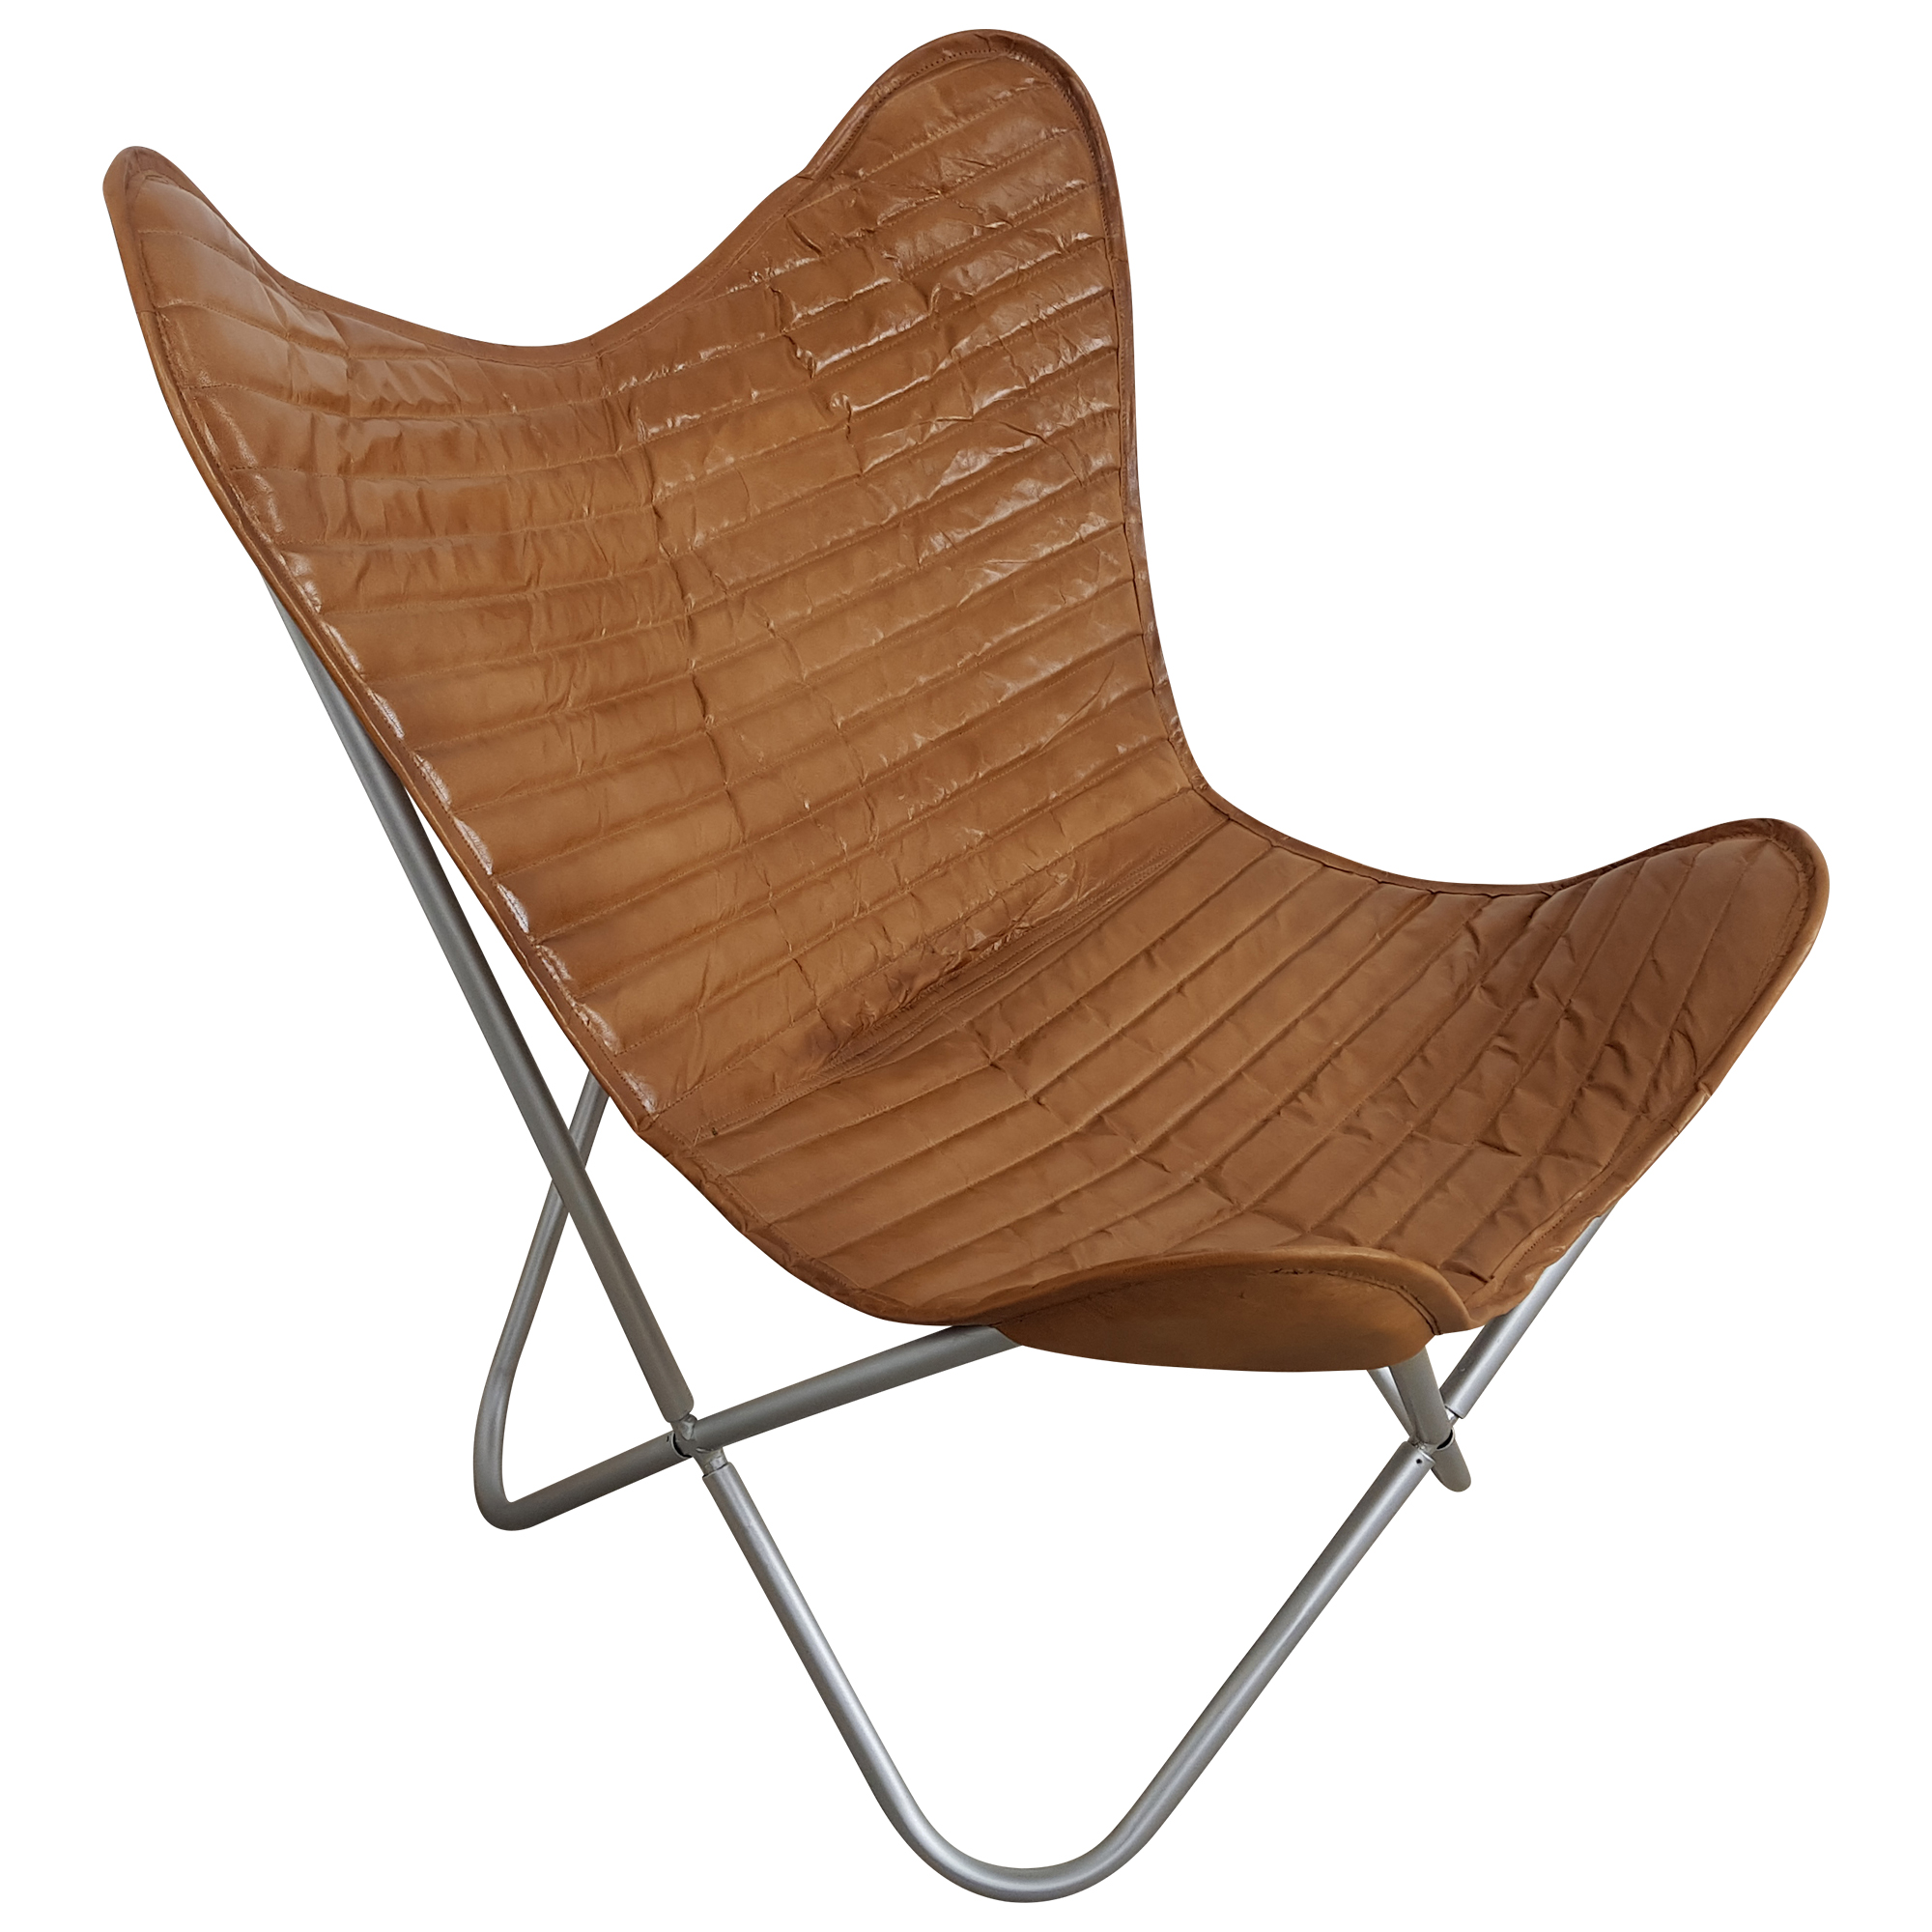 Retro Sessel Leder Butterfly Chair Sessel Design Lounge Stuhl Echt Leder